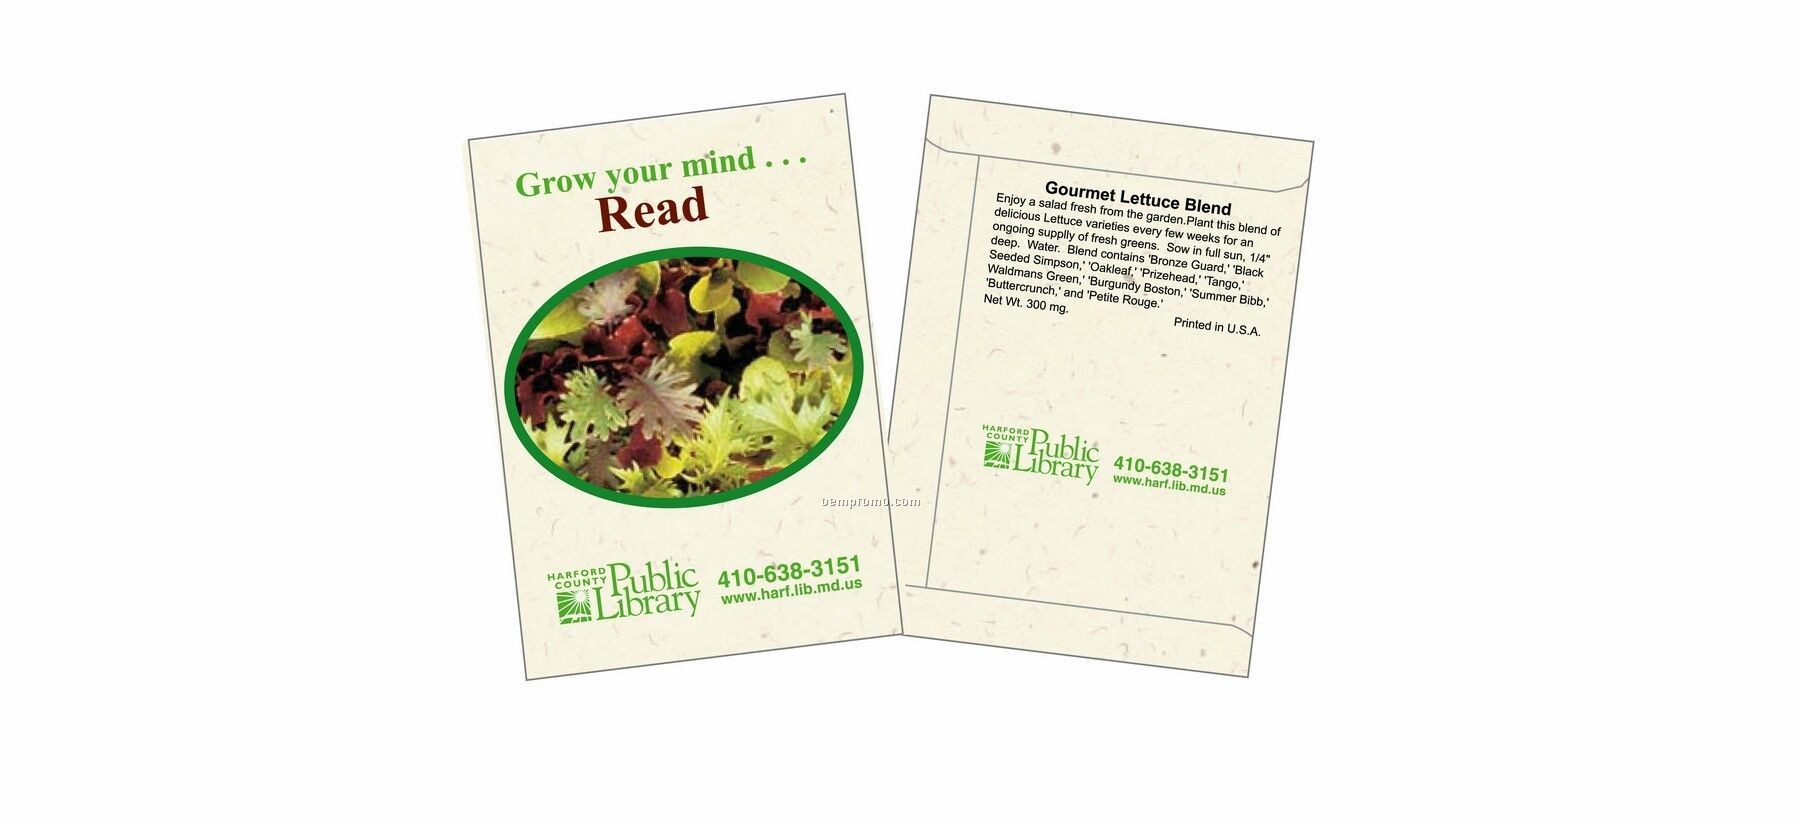 3027 Lettuce 'gourmet Blend' 2-color Imprint